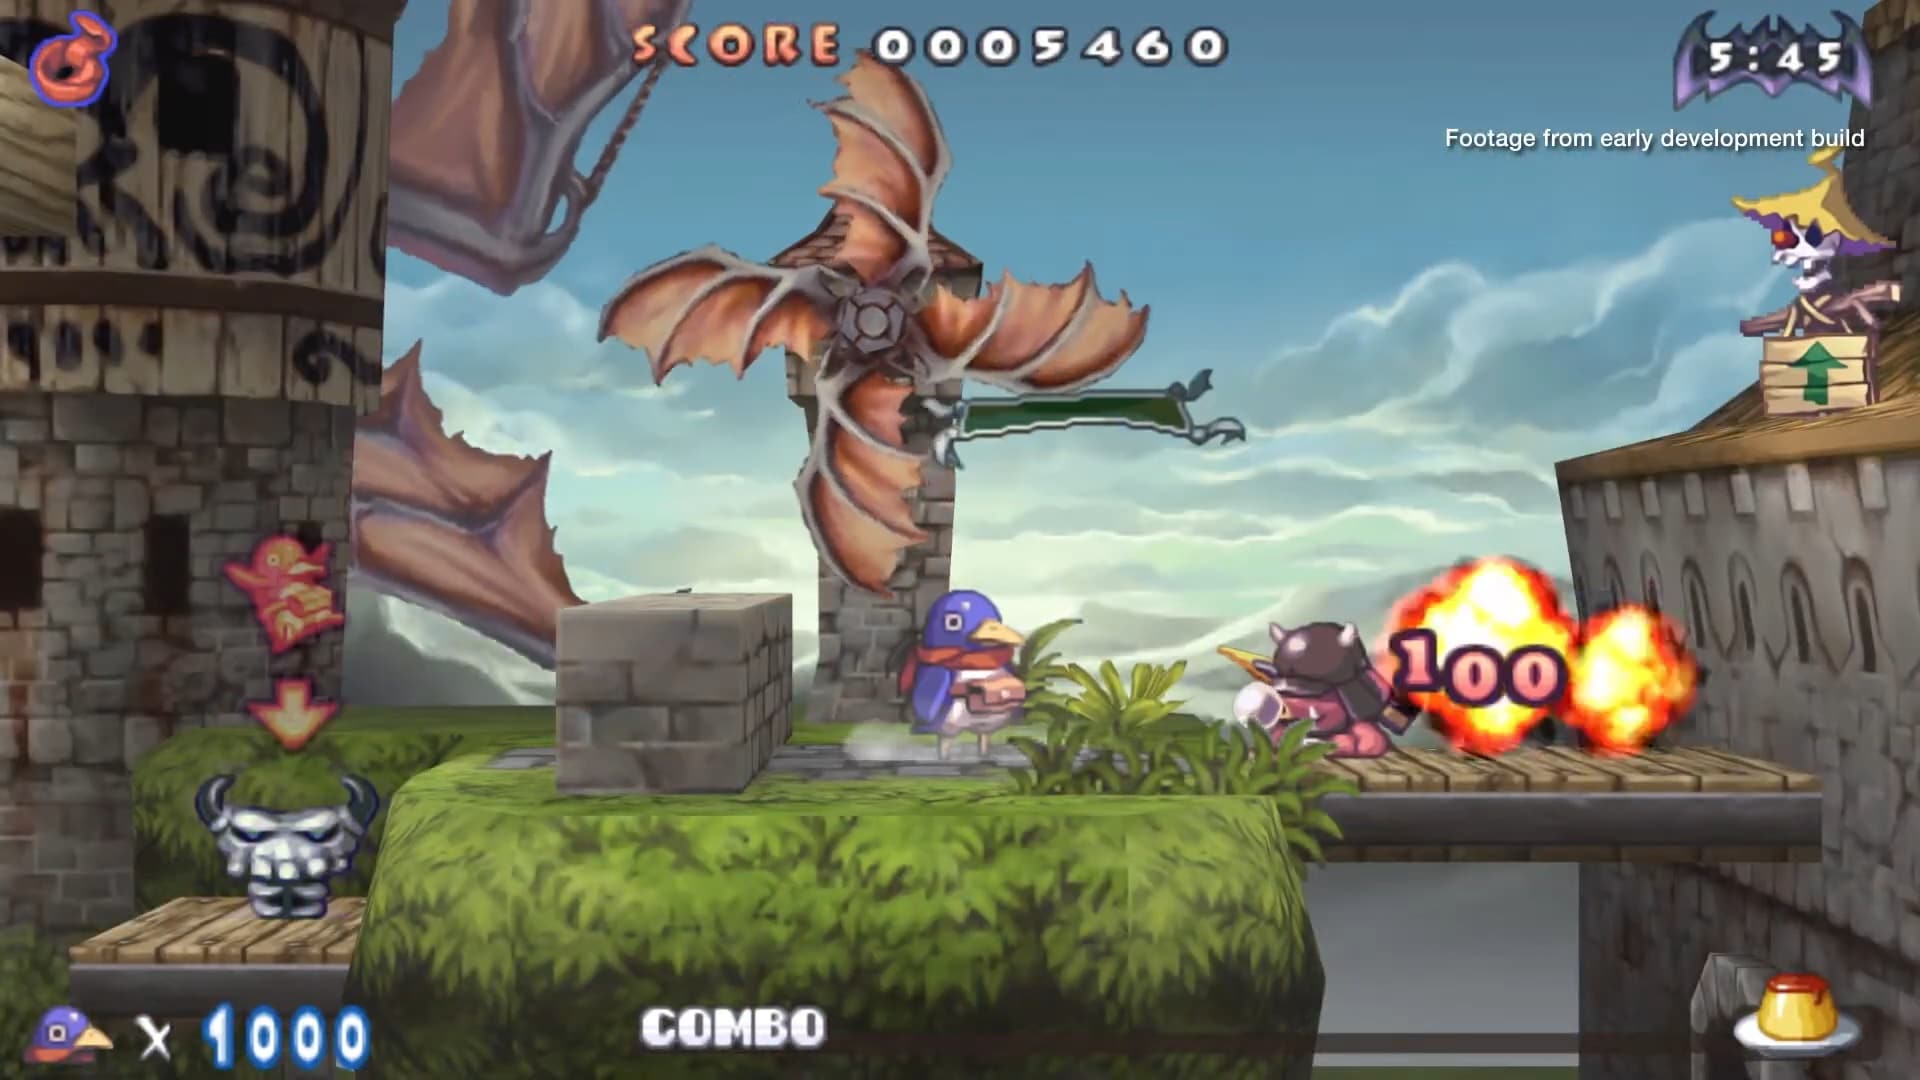 Prinny-1 2-Exploded-and-Reloaded (2)